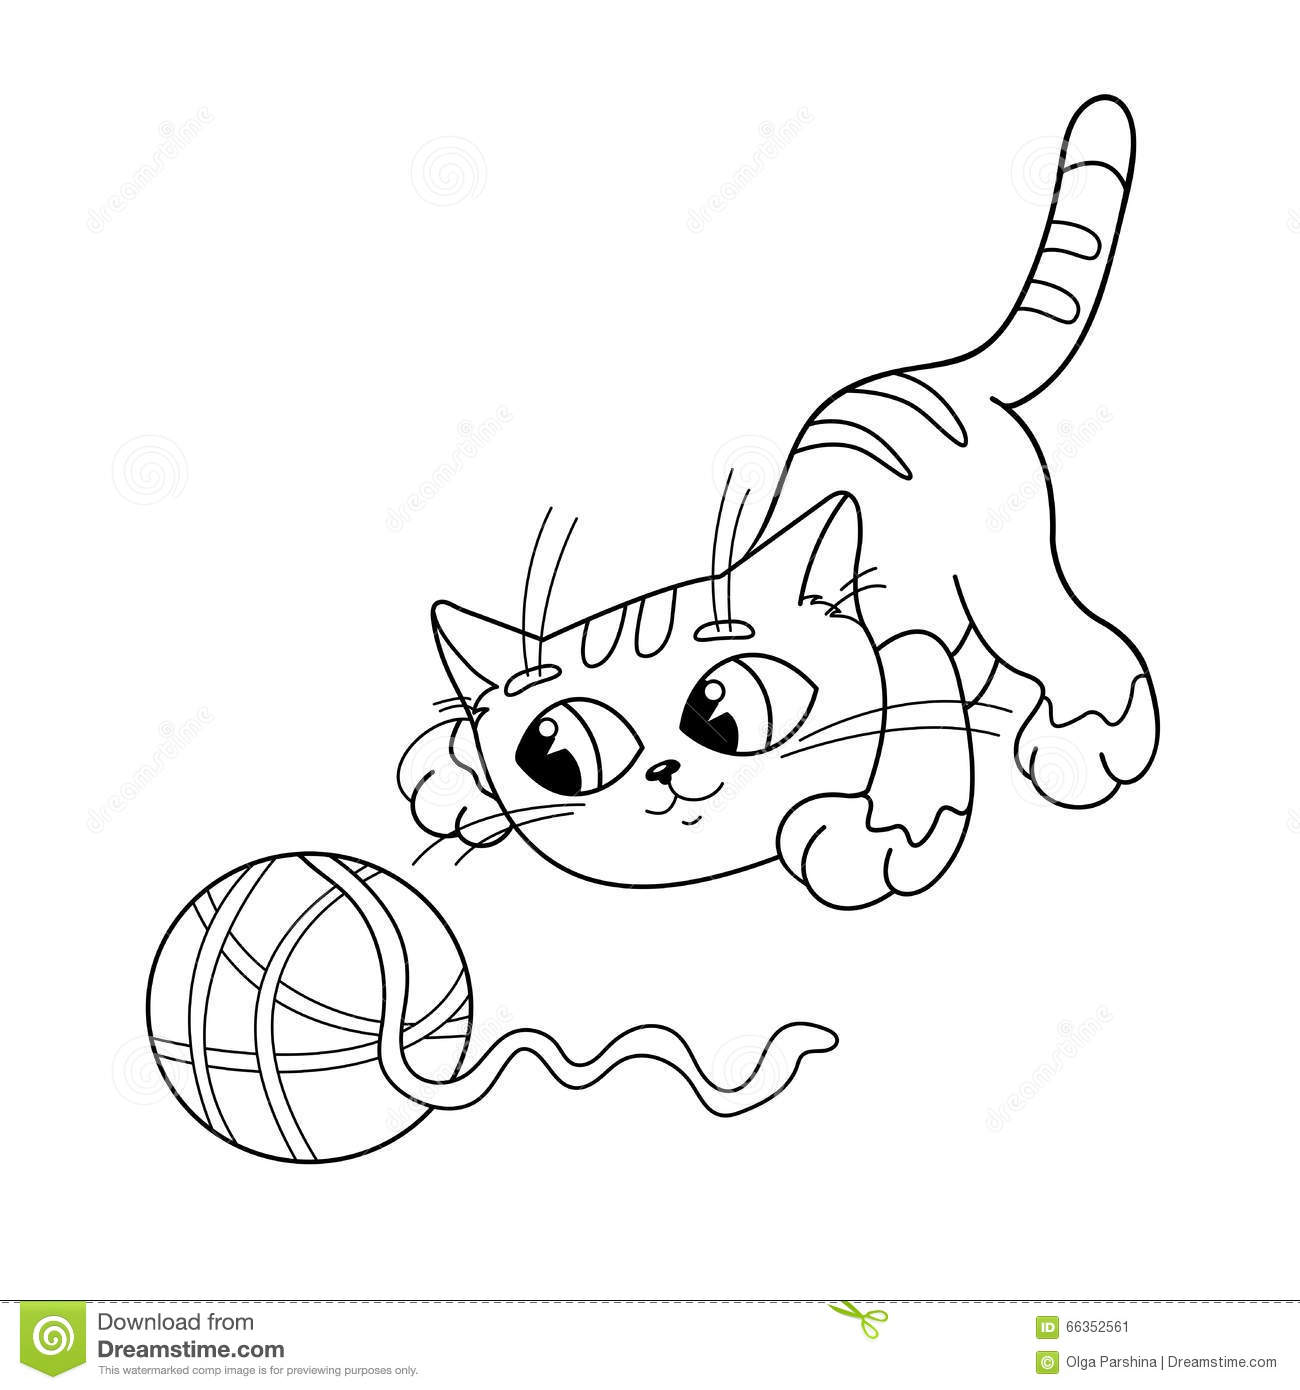 Coloring Page Outline Of Cat Playing With Ball Of Yarn